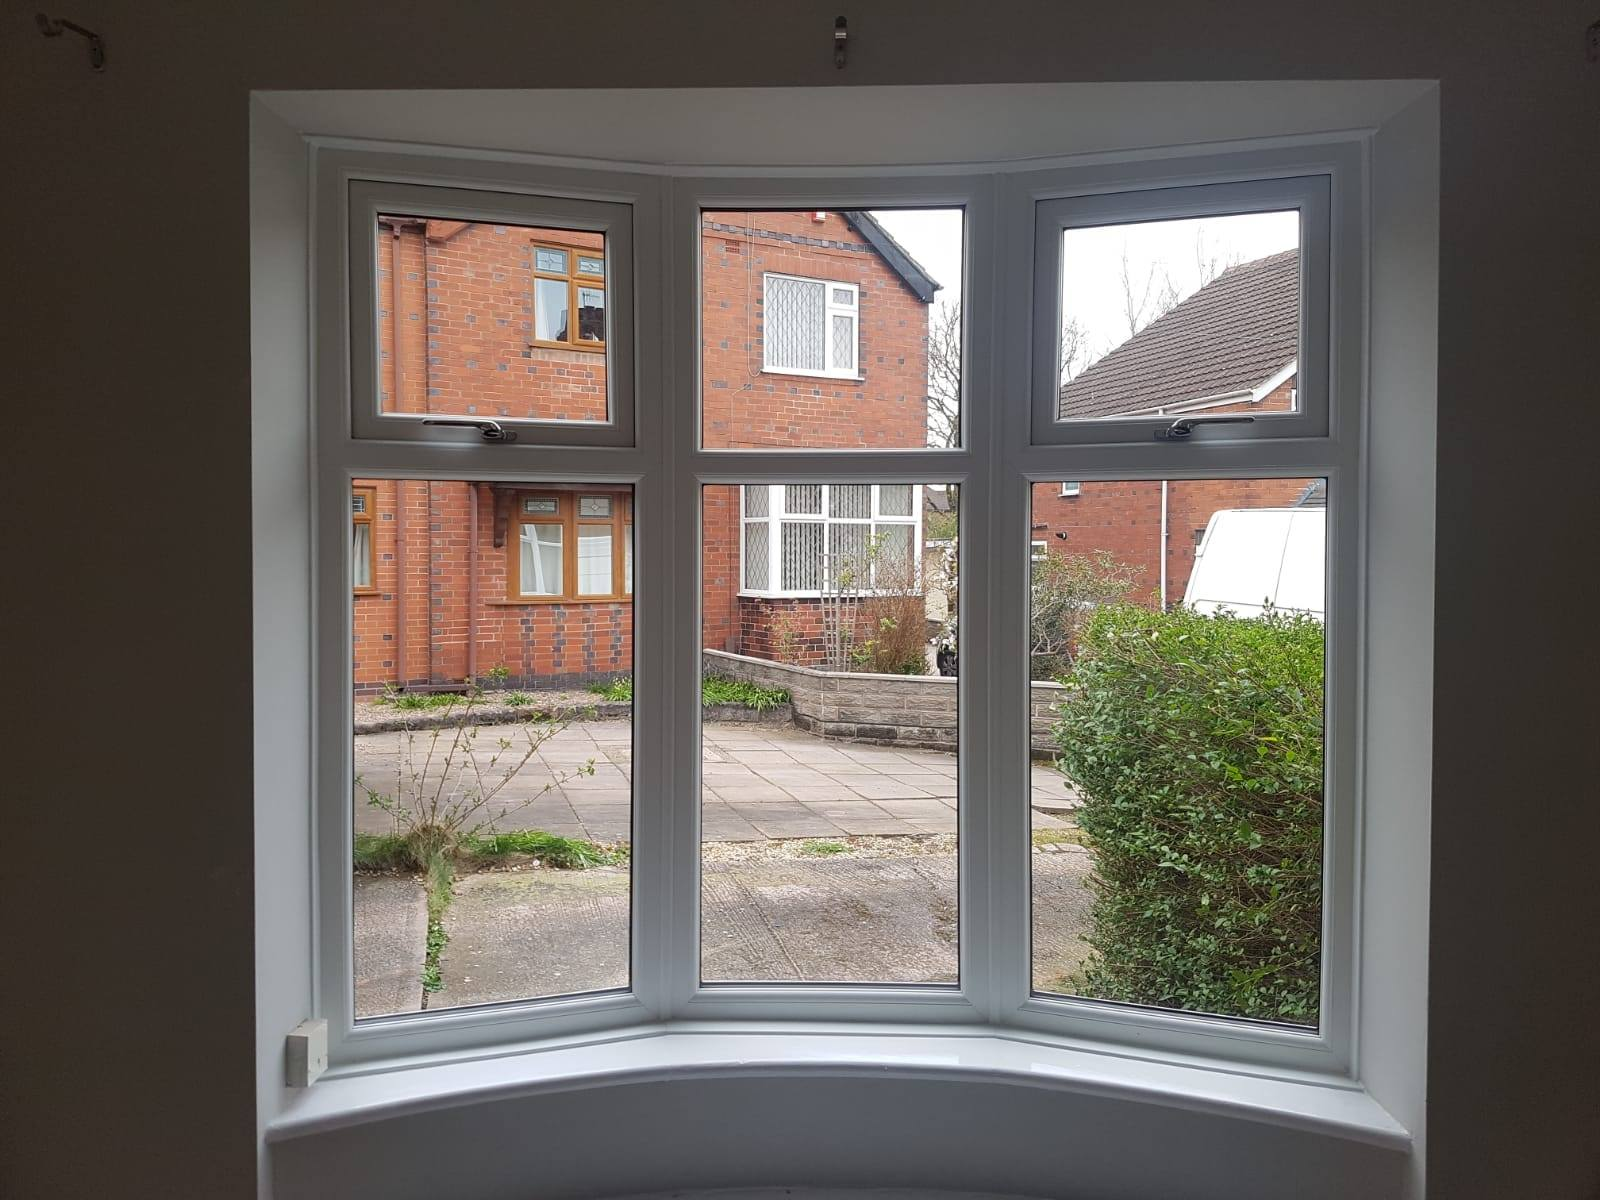 3 SECTION BAY WINDOW INTERNAL